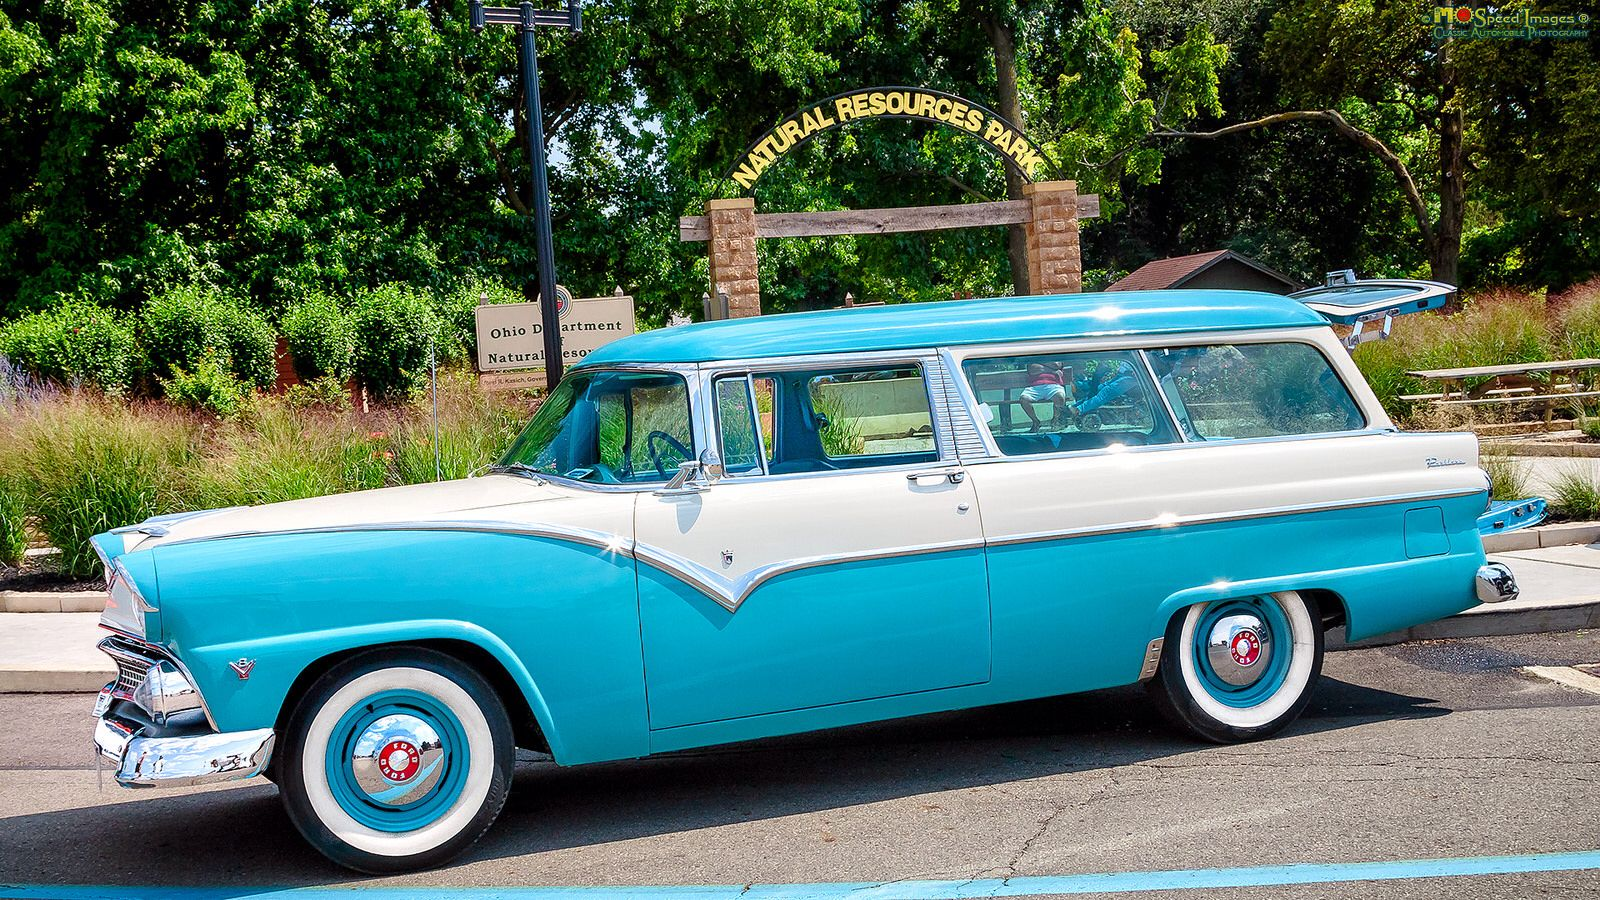 1955 Ford Parklane Station Wagon Station Wagon Station Wagon Cars Ford Classic Cars